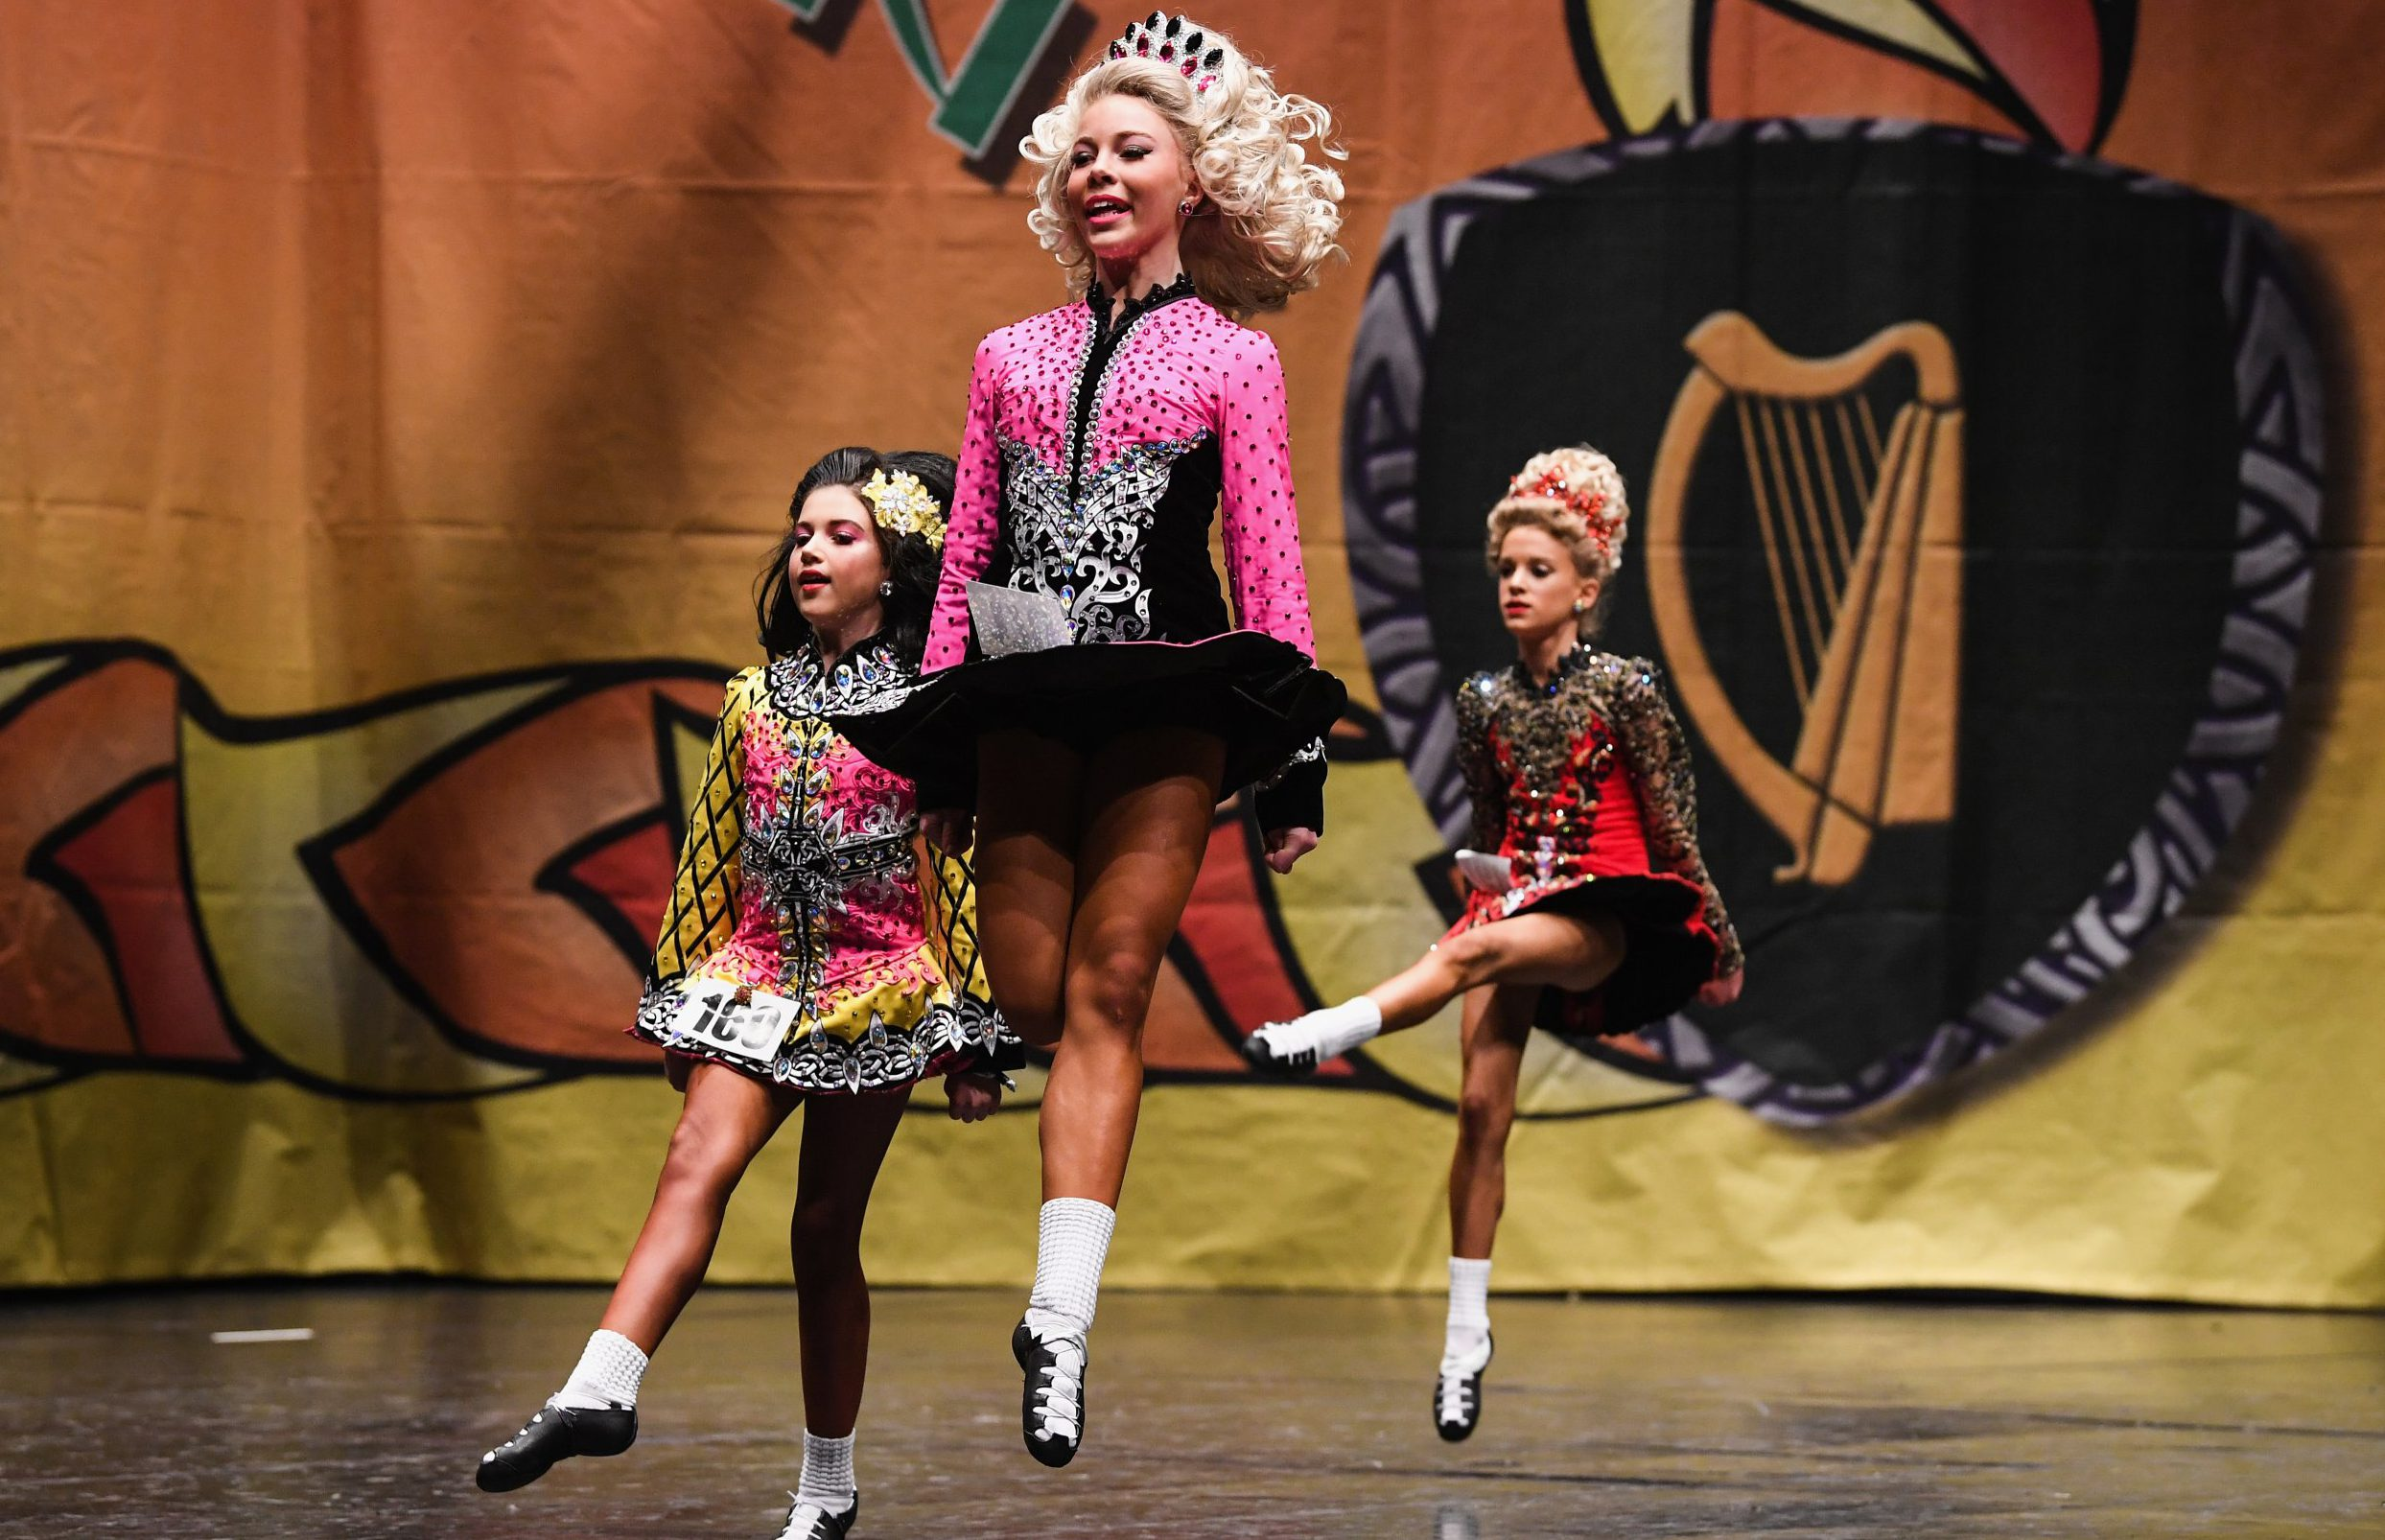 GLASGOW, SCOTLAND - MARCH 25: Competitors take part in the World Irish Dancing Championships on March 25, 2018 in Glasgow, Scotland. The World Irish Dancing Championships are taking place in Glasgow this week at the Royal Concert Hall, with more than 14,500 dancers and supporters expected to travel to the championships which has run for more than forty years. (Photo by Jeff J Mitchell/Getty Images)